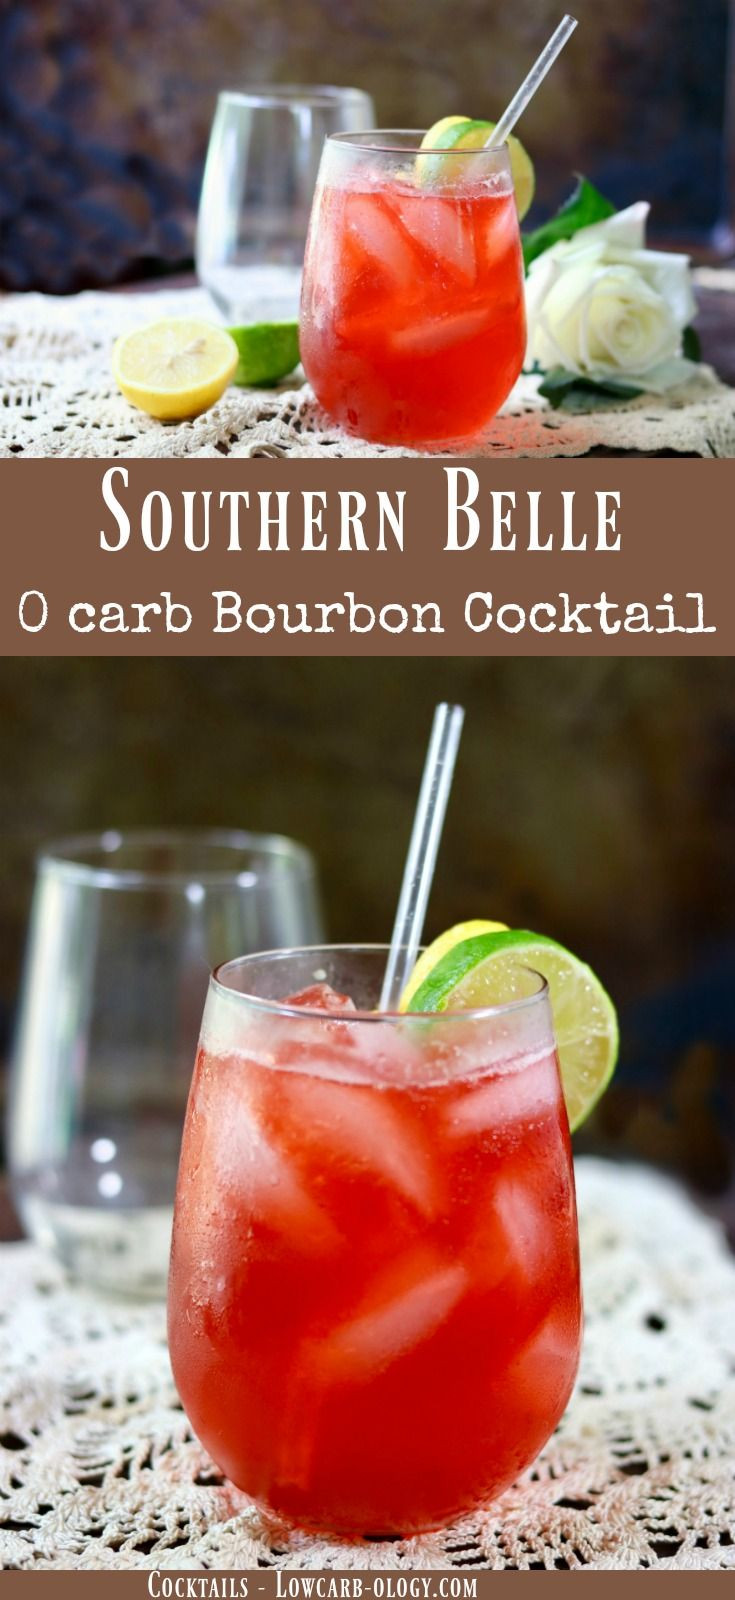 Summer Whiskey Drinks  Summer Bourbon Cocktail The Southern Belle lowcarb ology